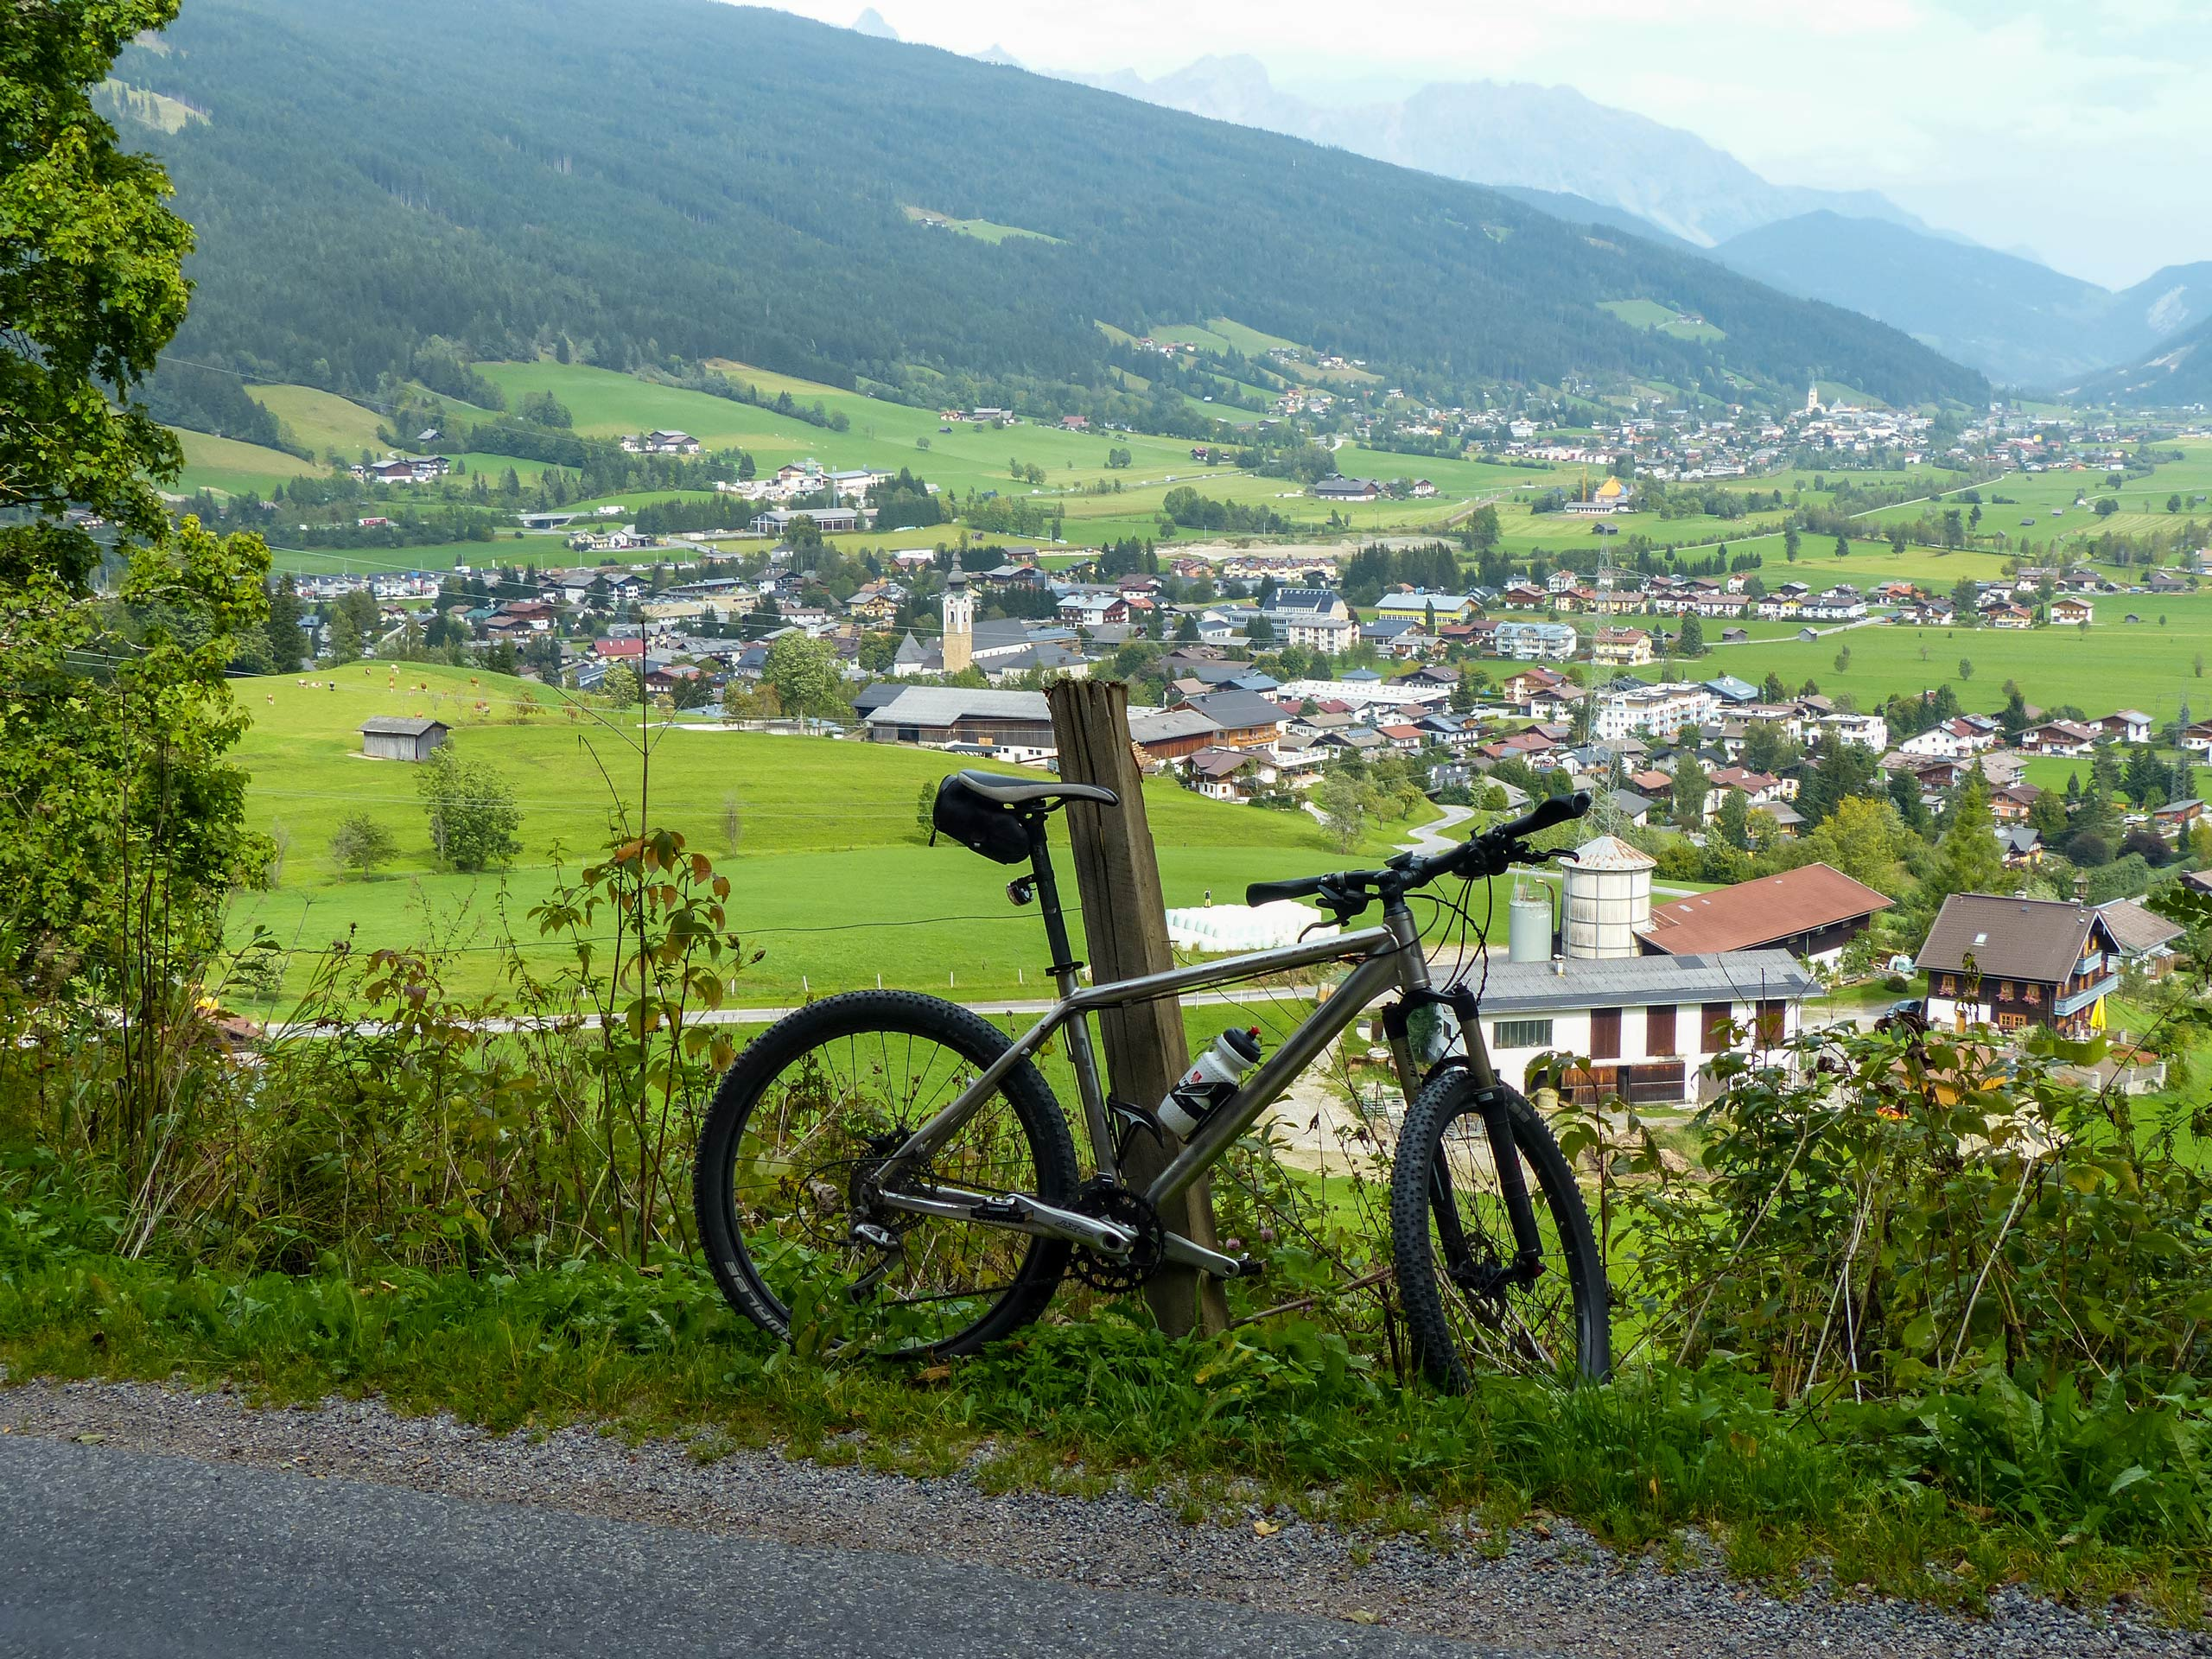 Mountain bike cycling villages in the Austrian Alps